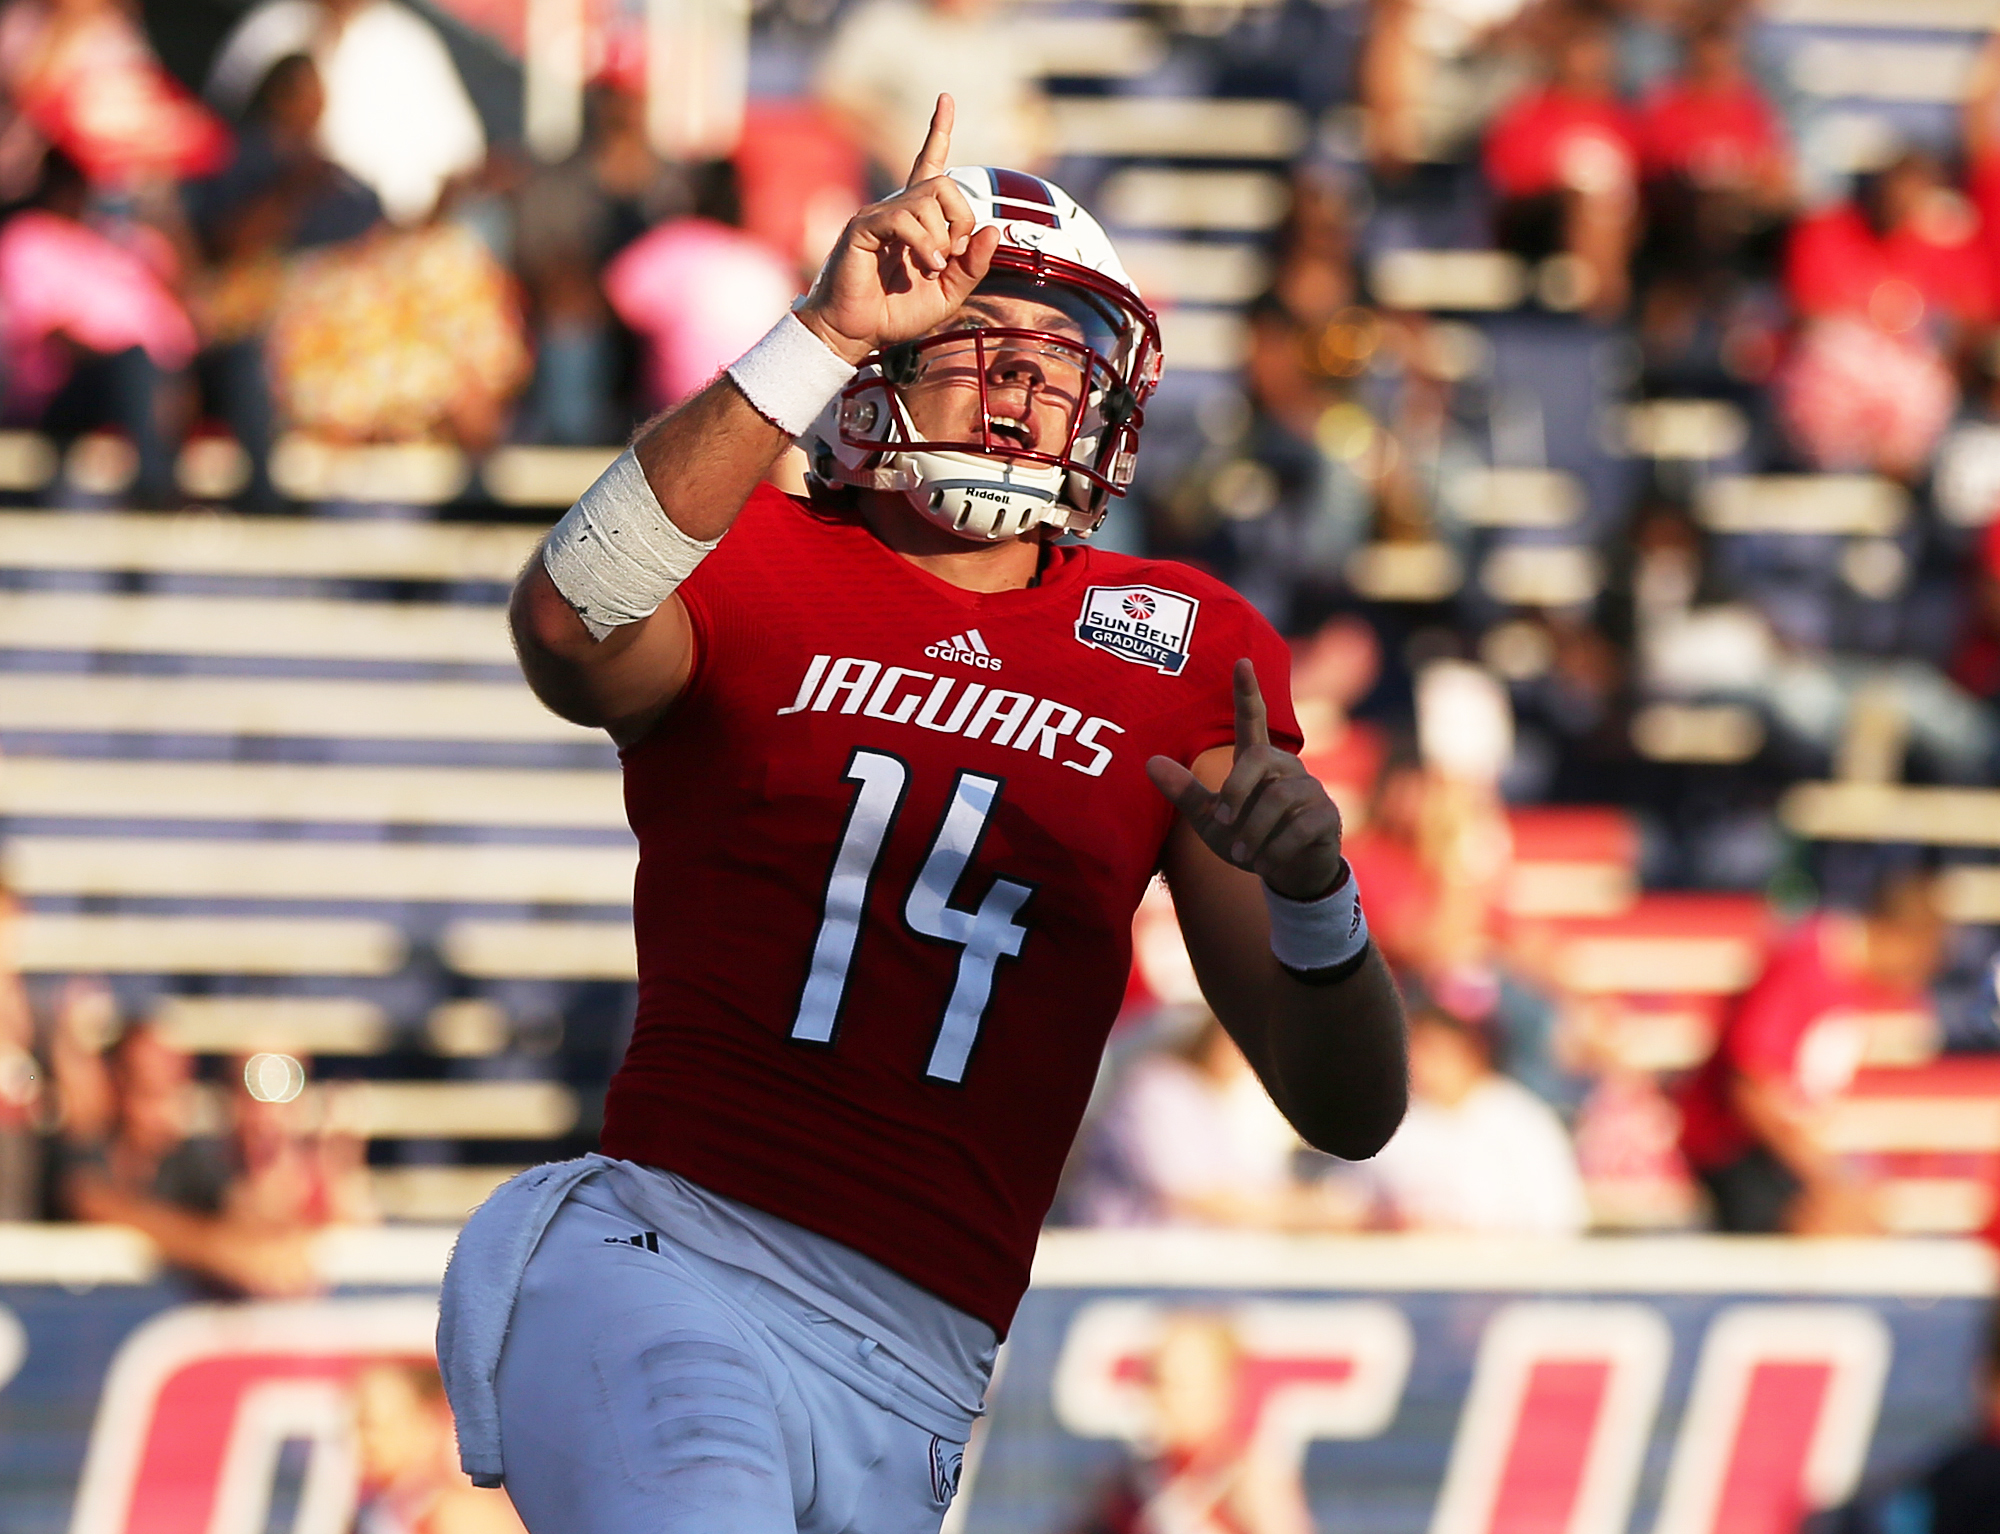 Quarterback Evan Orth and South Alabama host rival Troy in a nationally televised game Tuesday night. Mike Kittrell, for AL.com